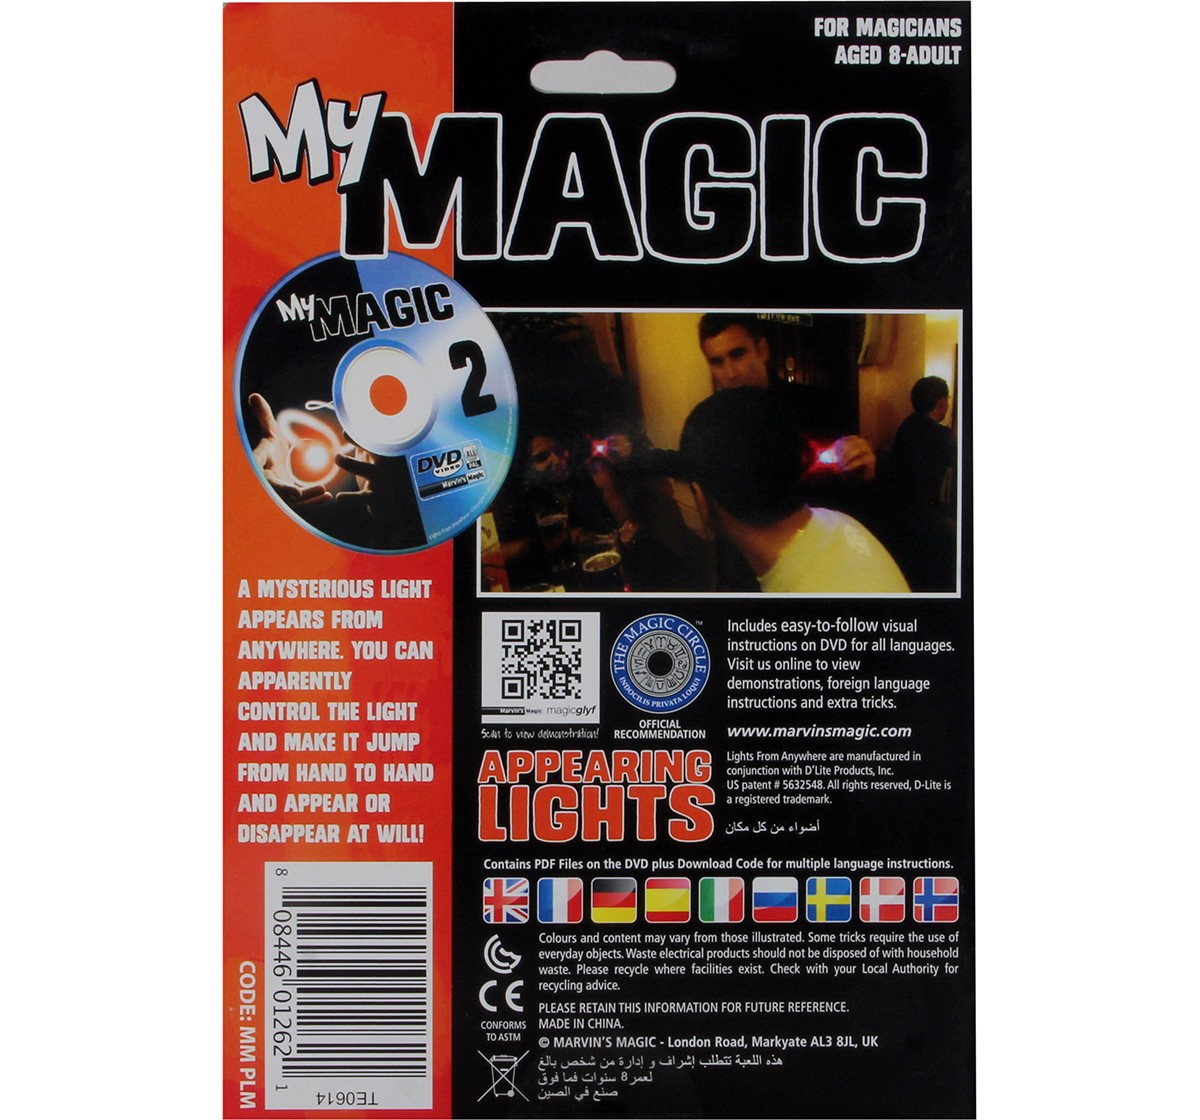 Marvin'S Magic Magically Appearing Lights Set, Multi Color Impulse Toys for Kids age 8Y+